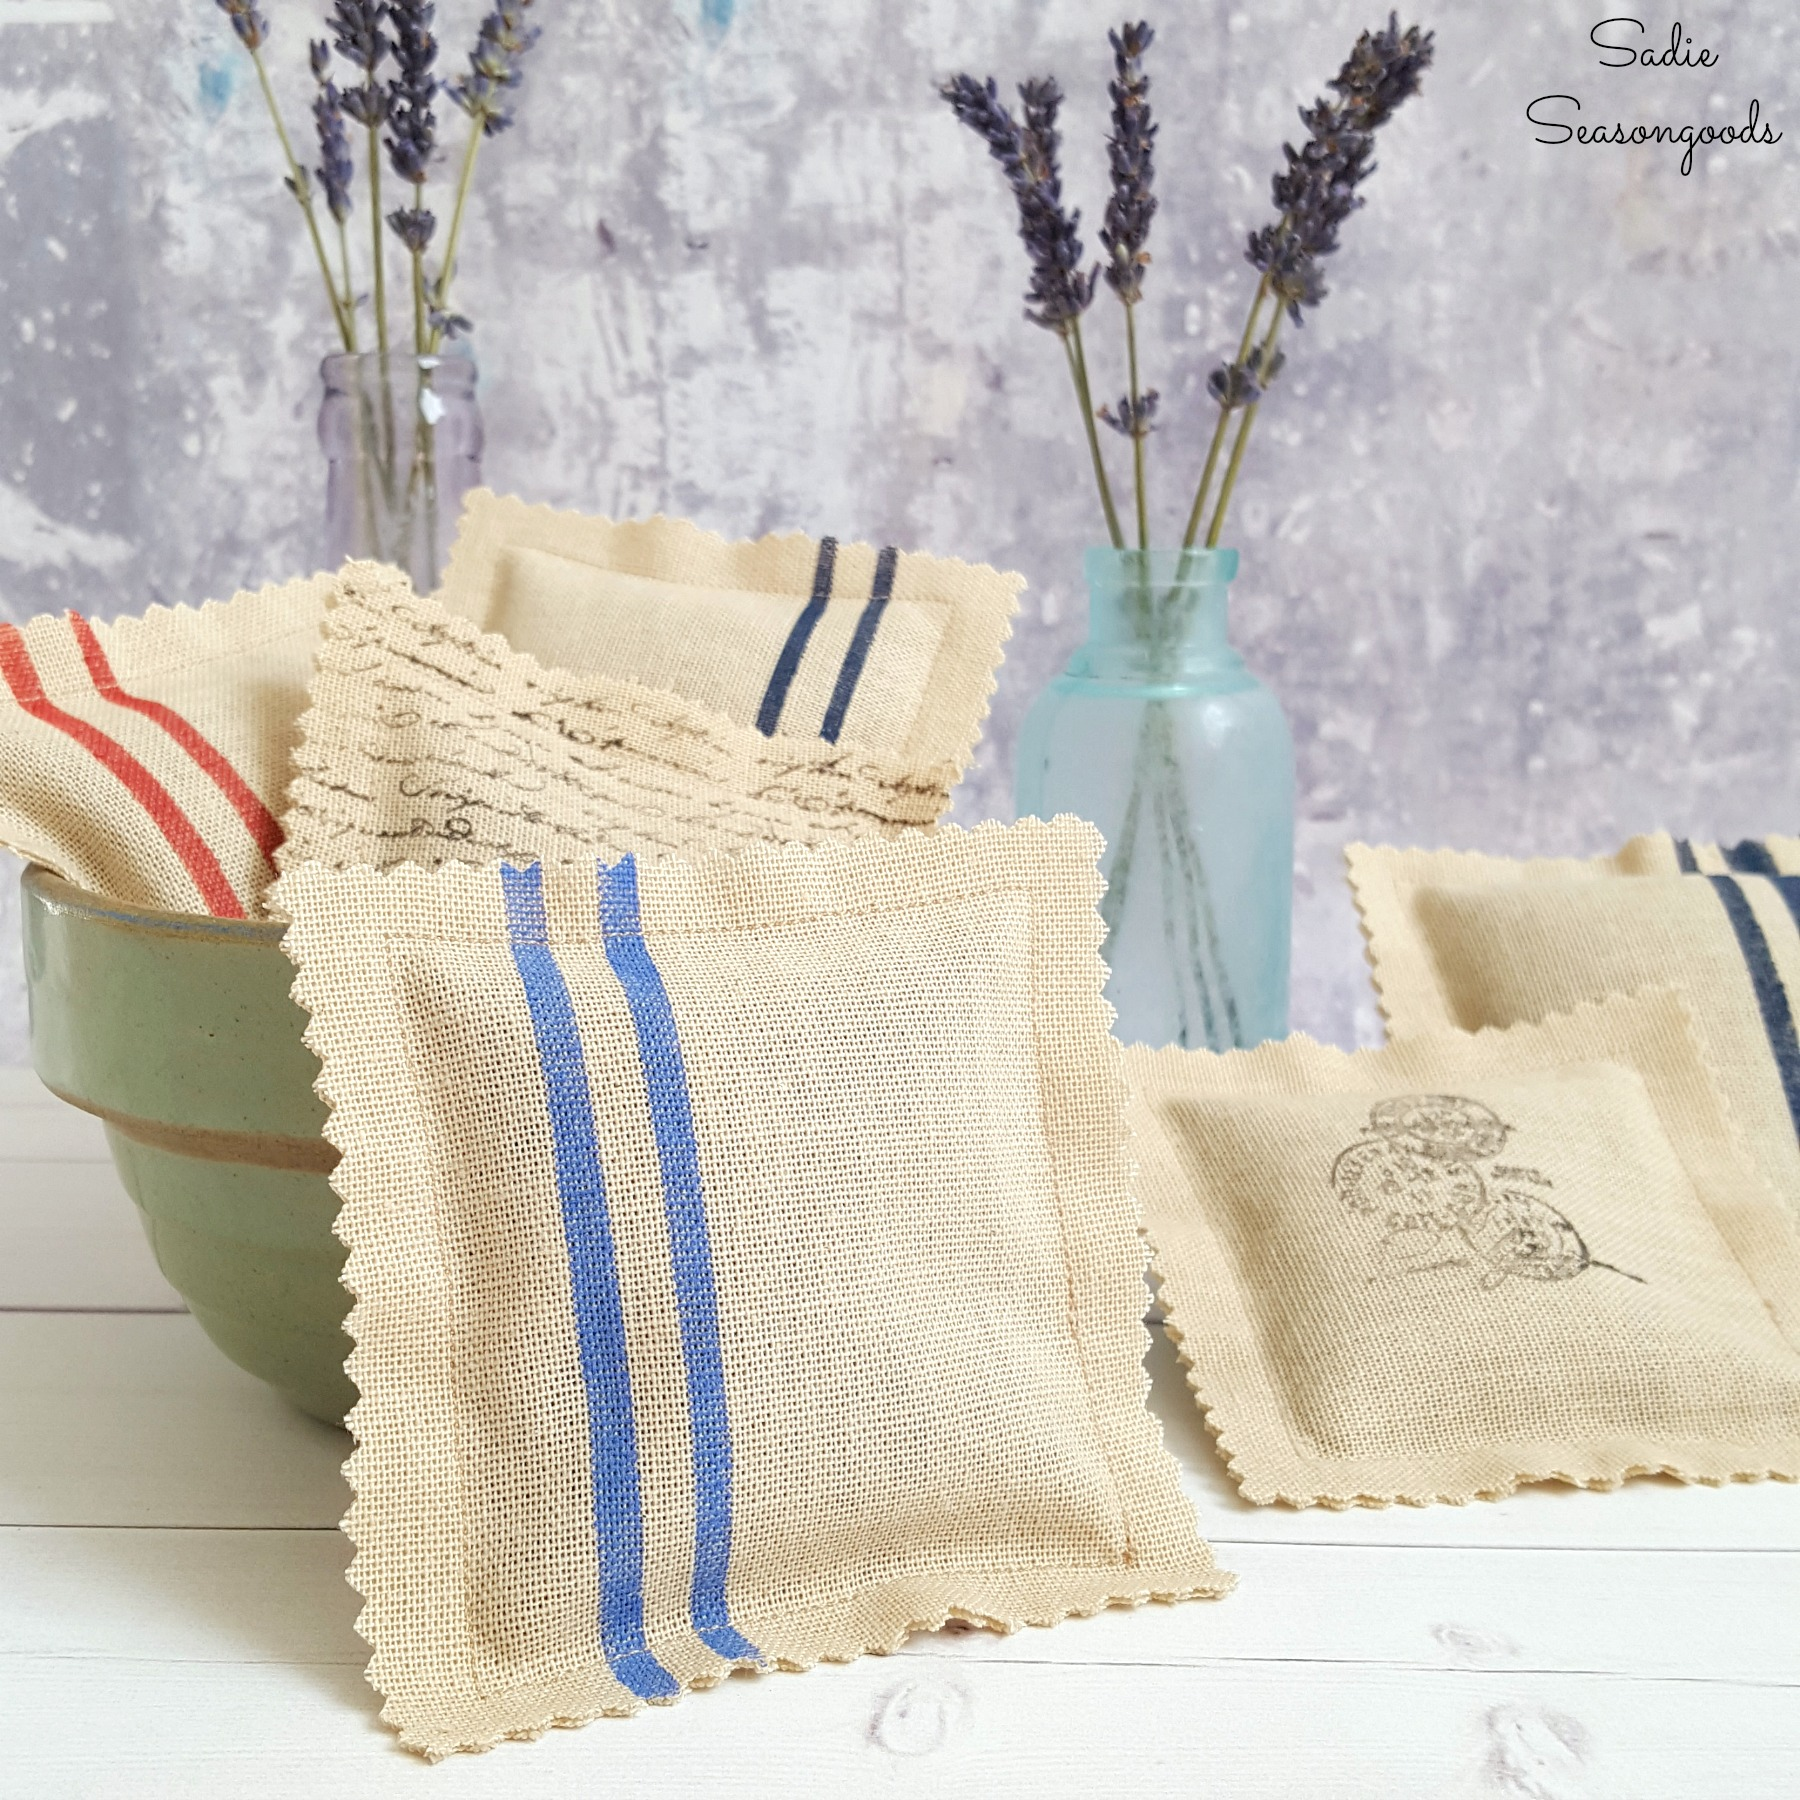 Faux grain sack sachets from curtains, by Sadie Seasongoods, featured on Funky Junk Interiors